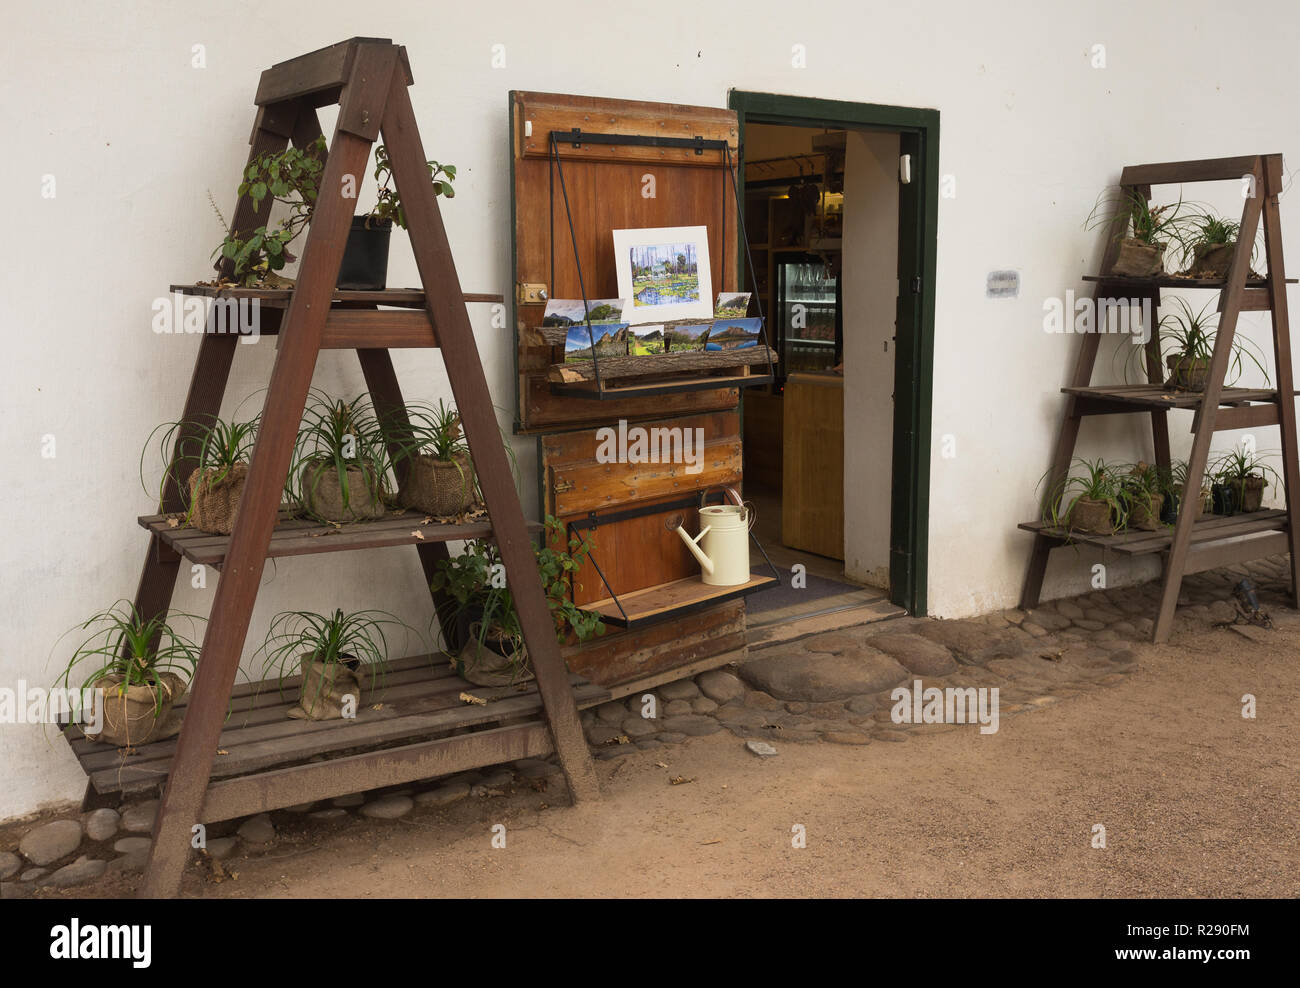 Wooden Shelving Or Display Unit A Shape Outside Opened Door Of